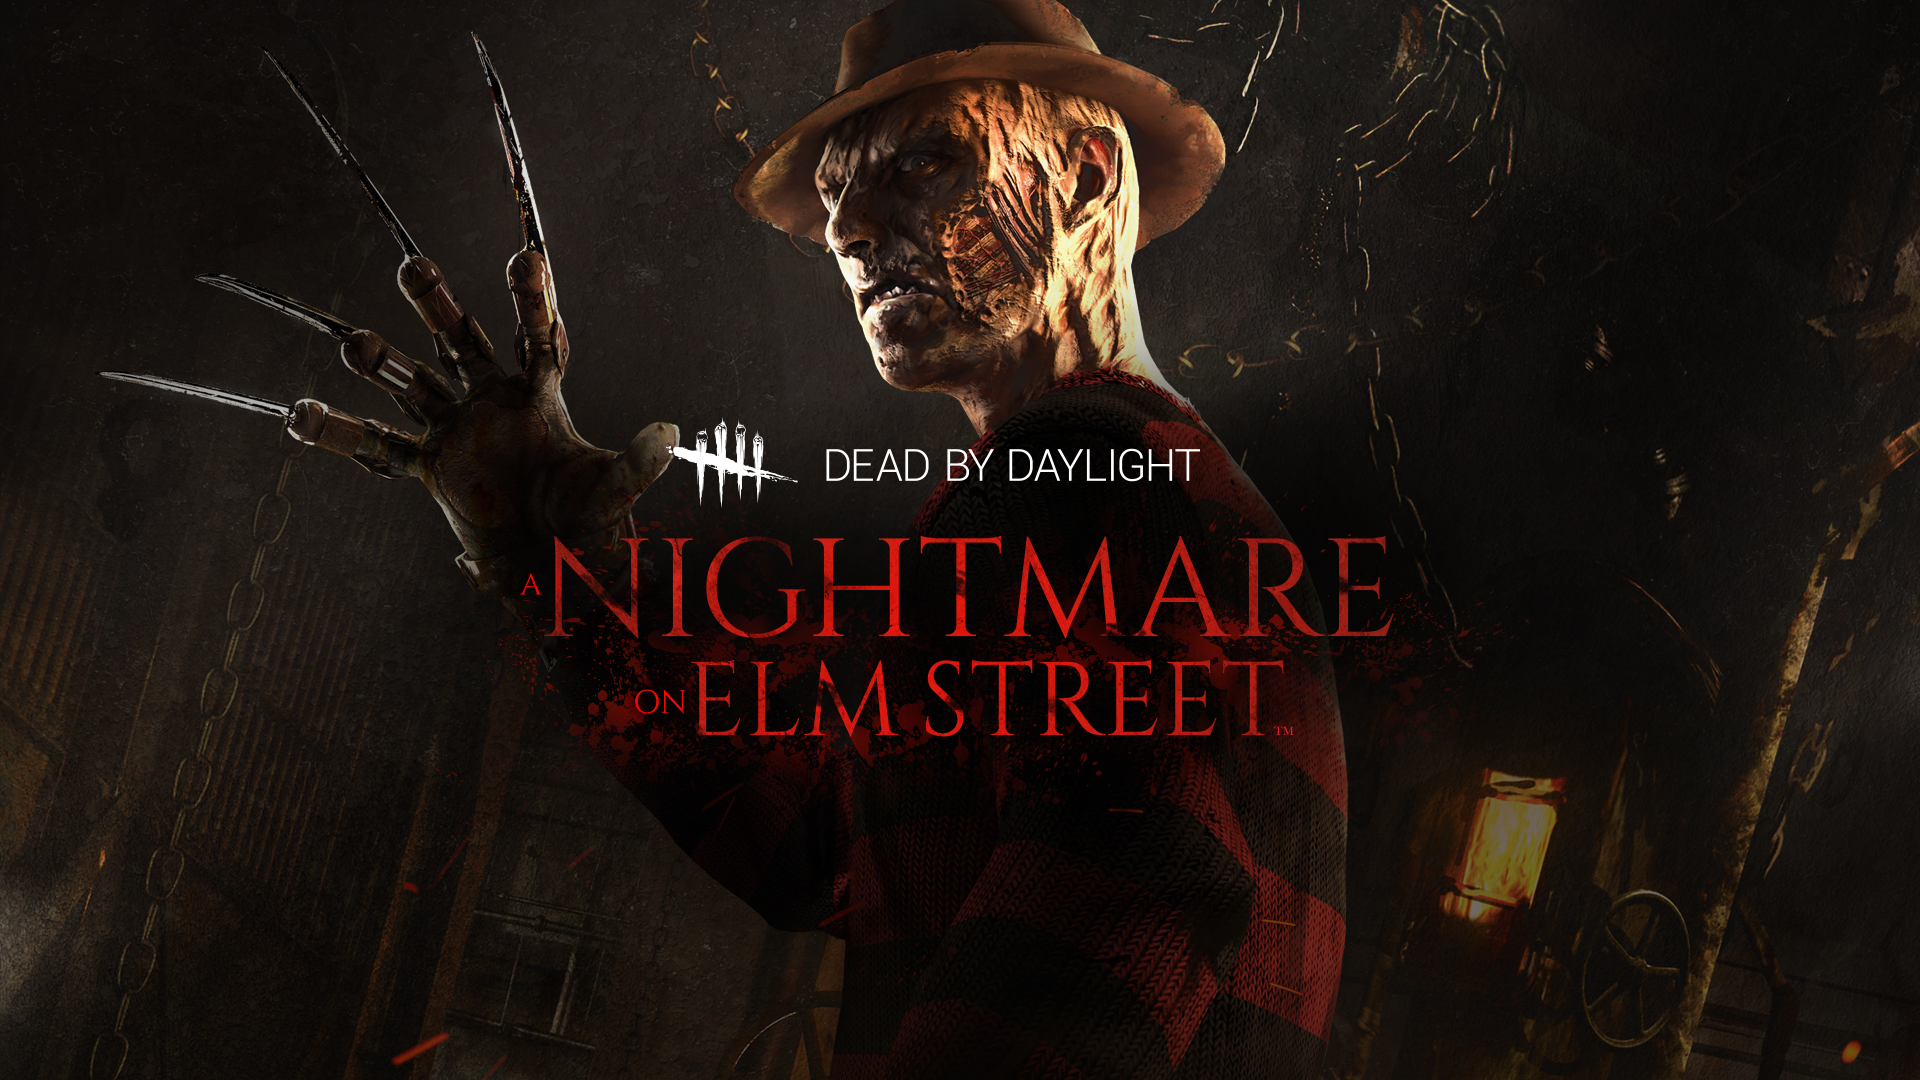 Media Blast Freddy Goes Dead By Daylight With The A Nightmare On